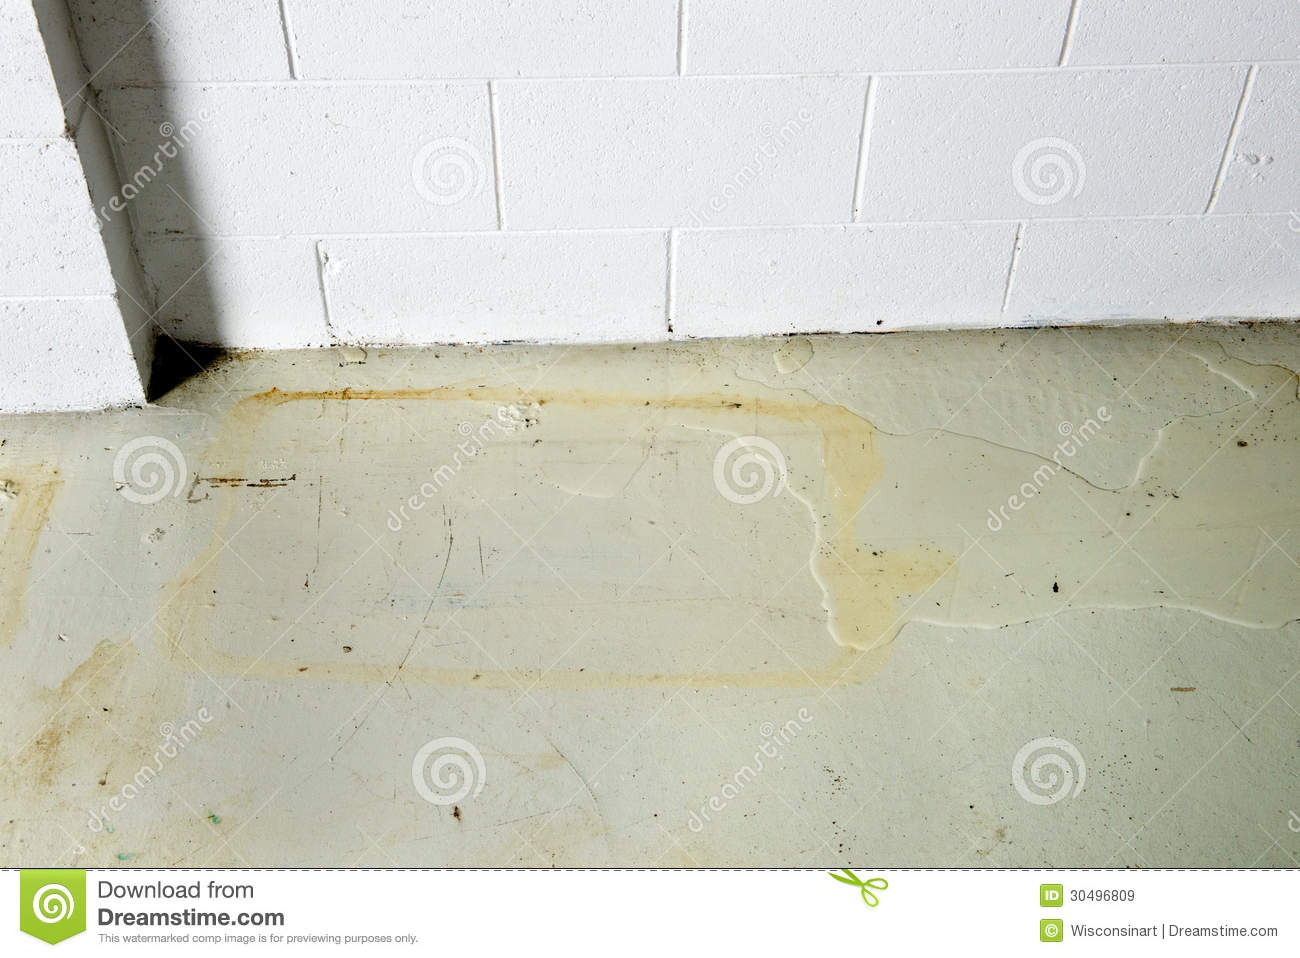 basement water seepage thru foundation seeping causing damage staining